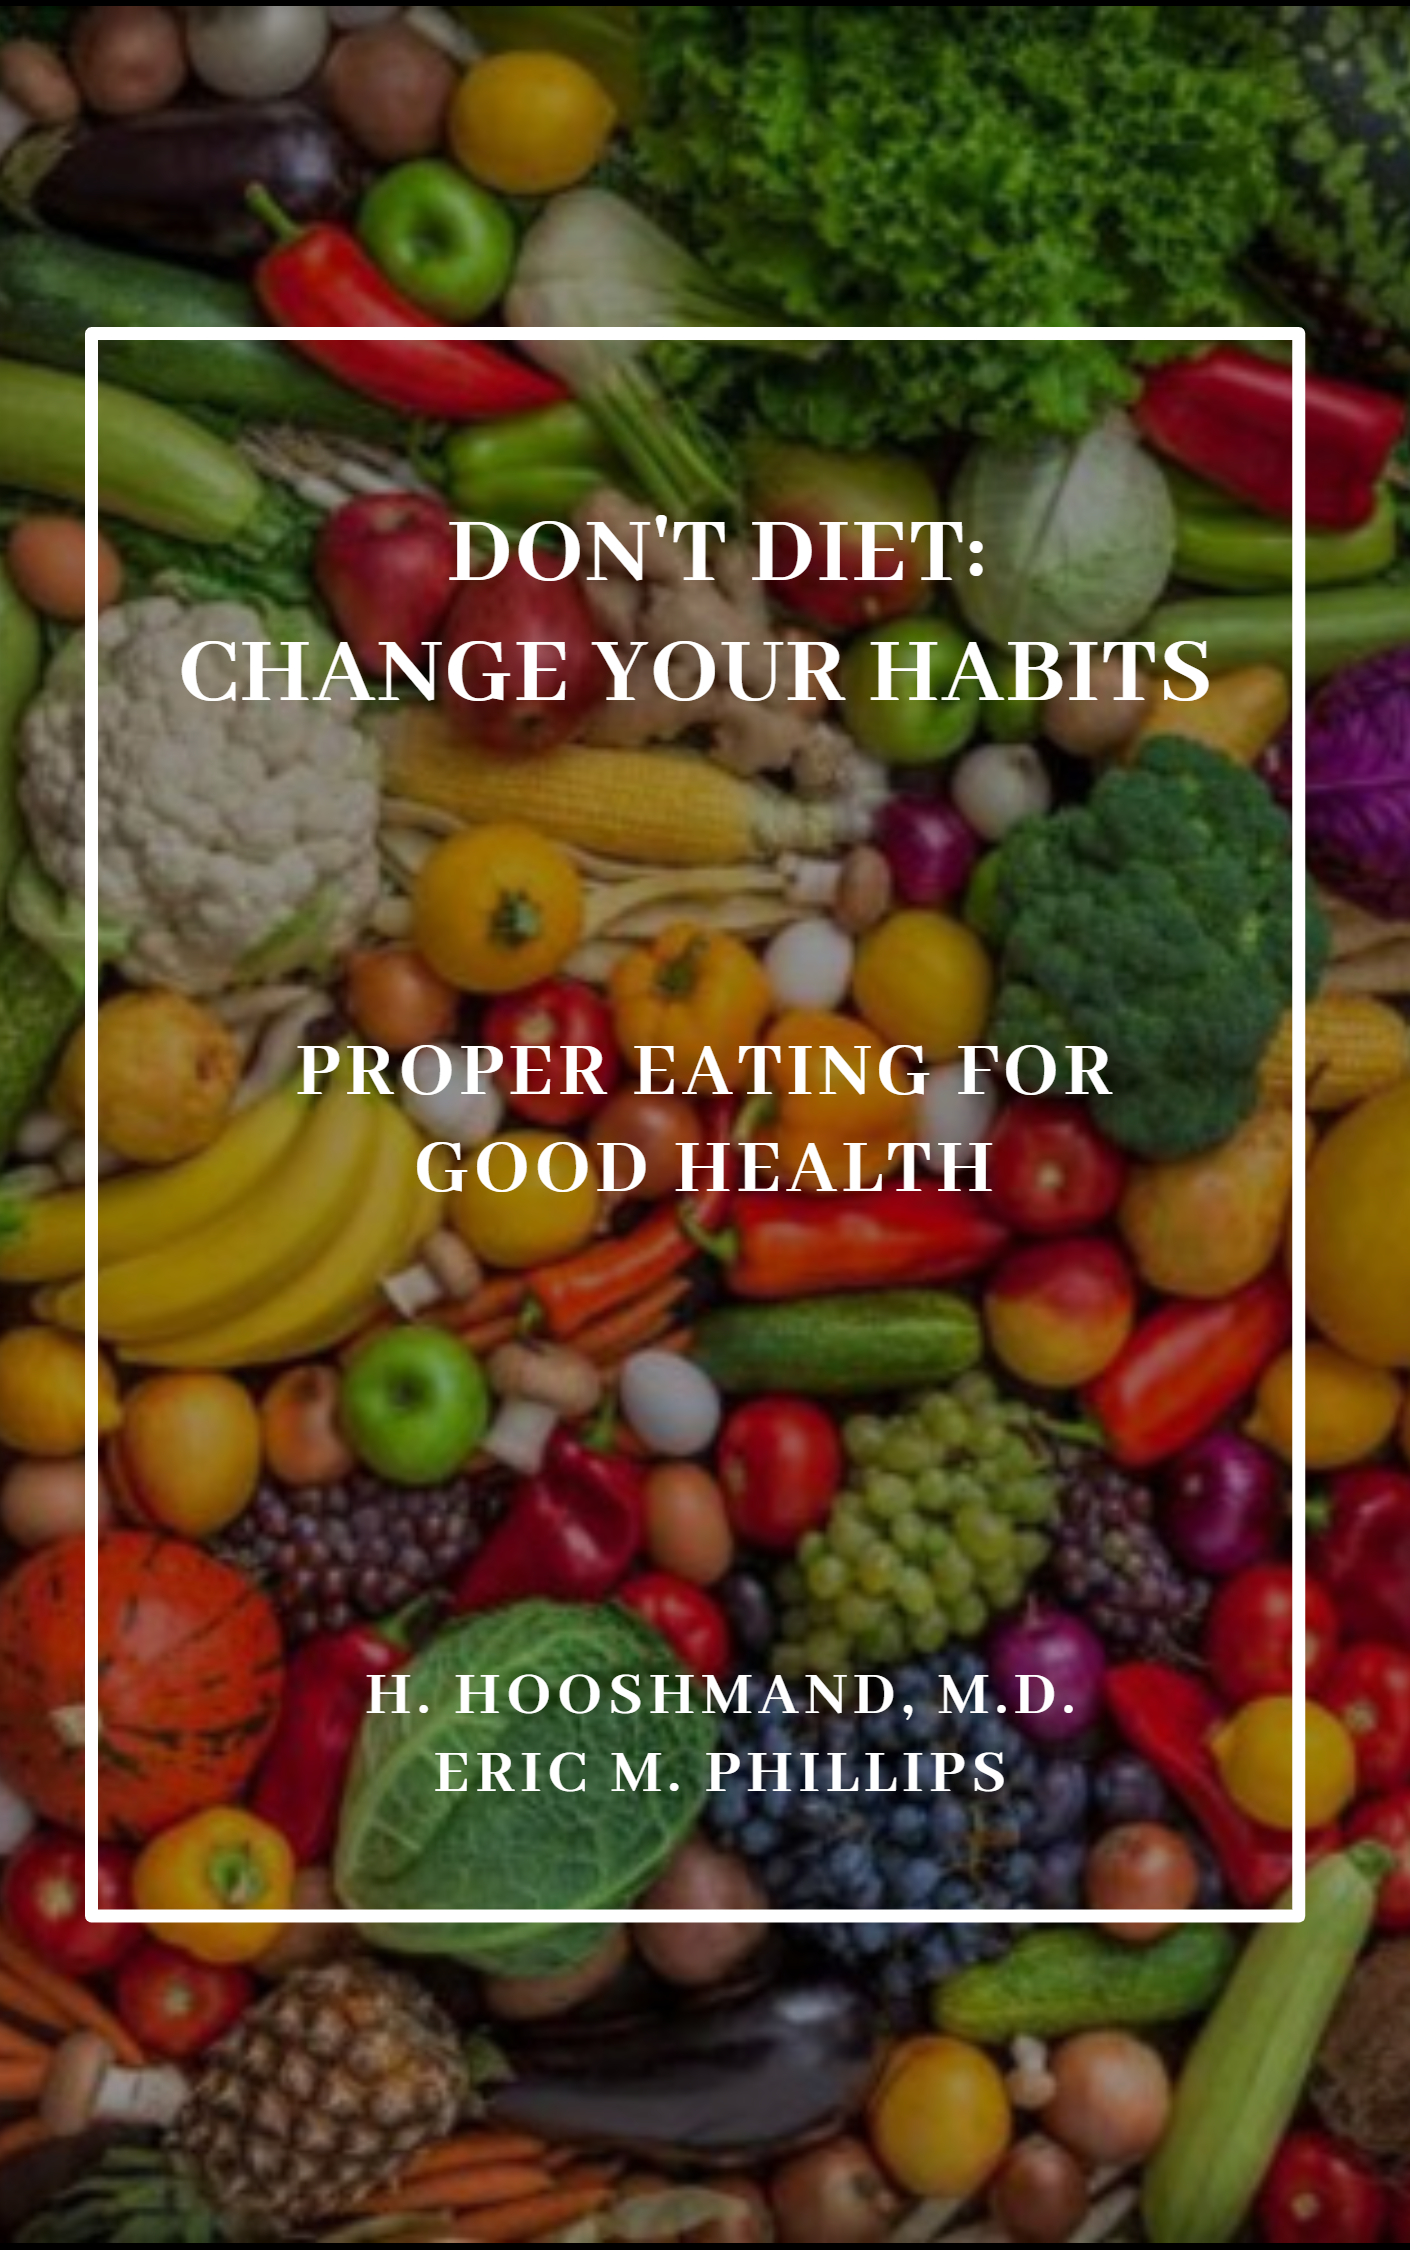 Don't Diet Front Book Cover 4-20-20